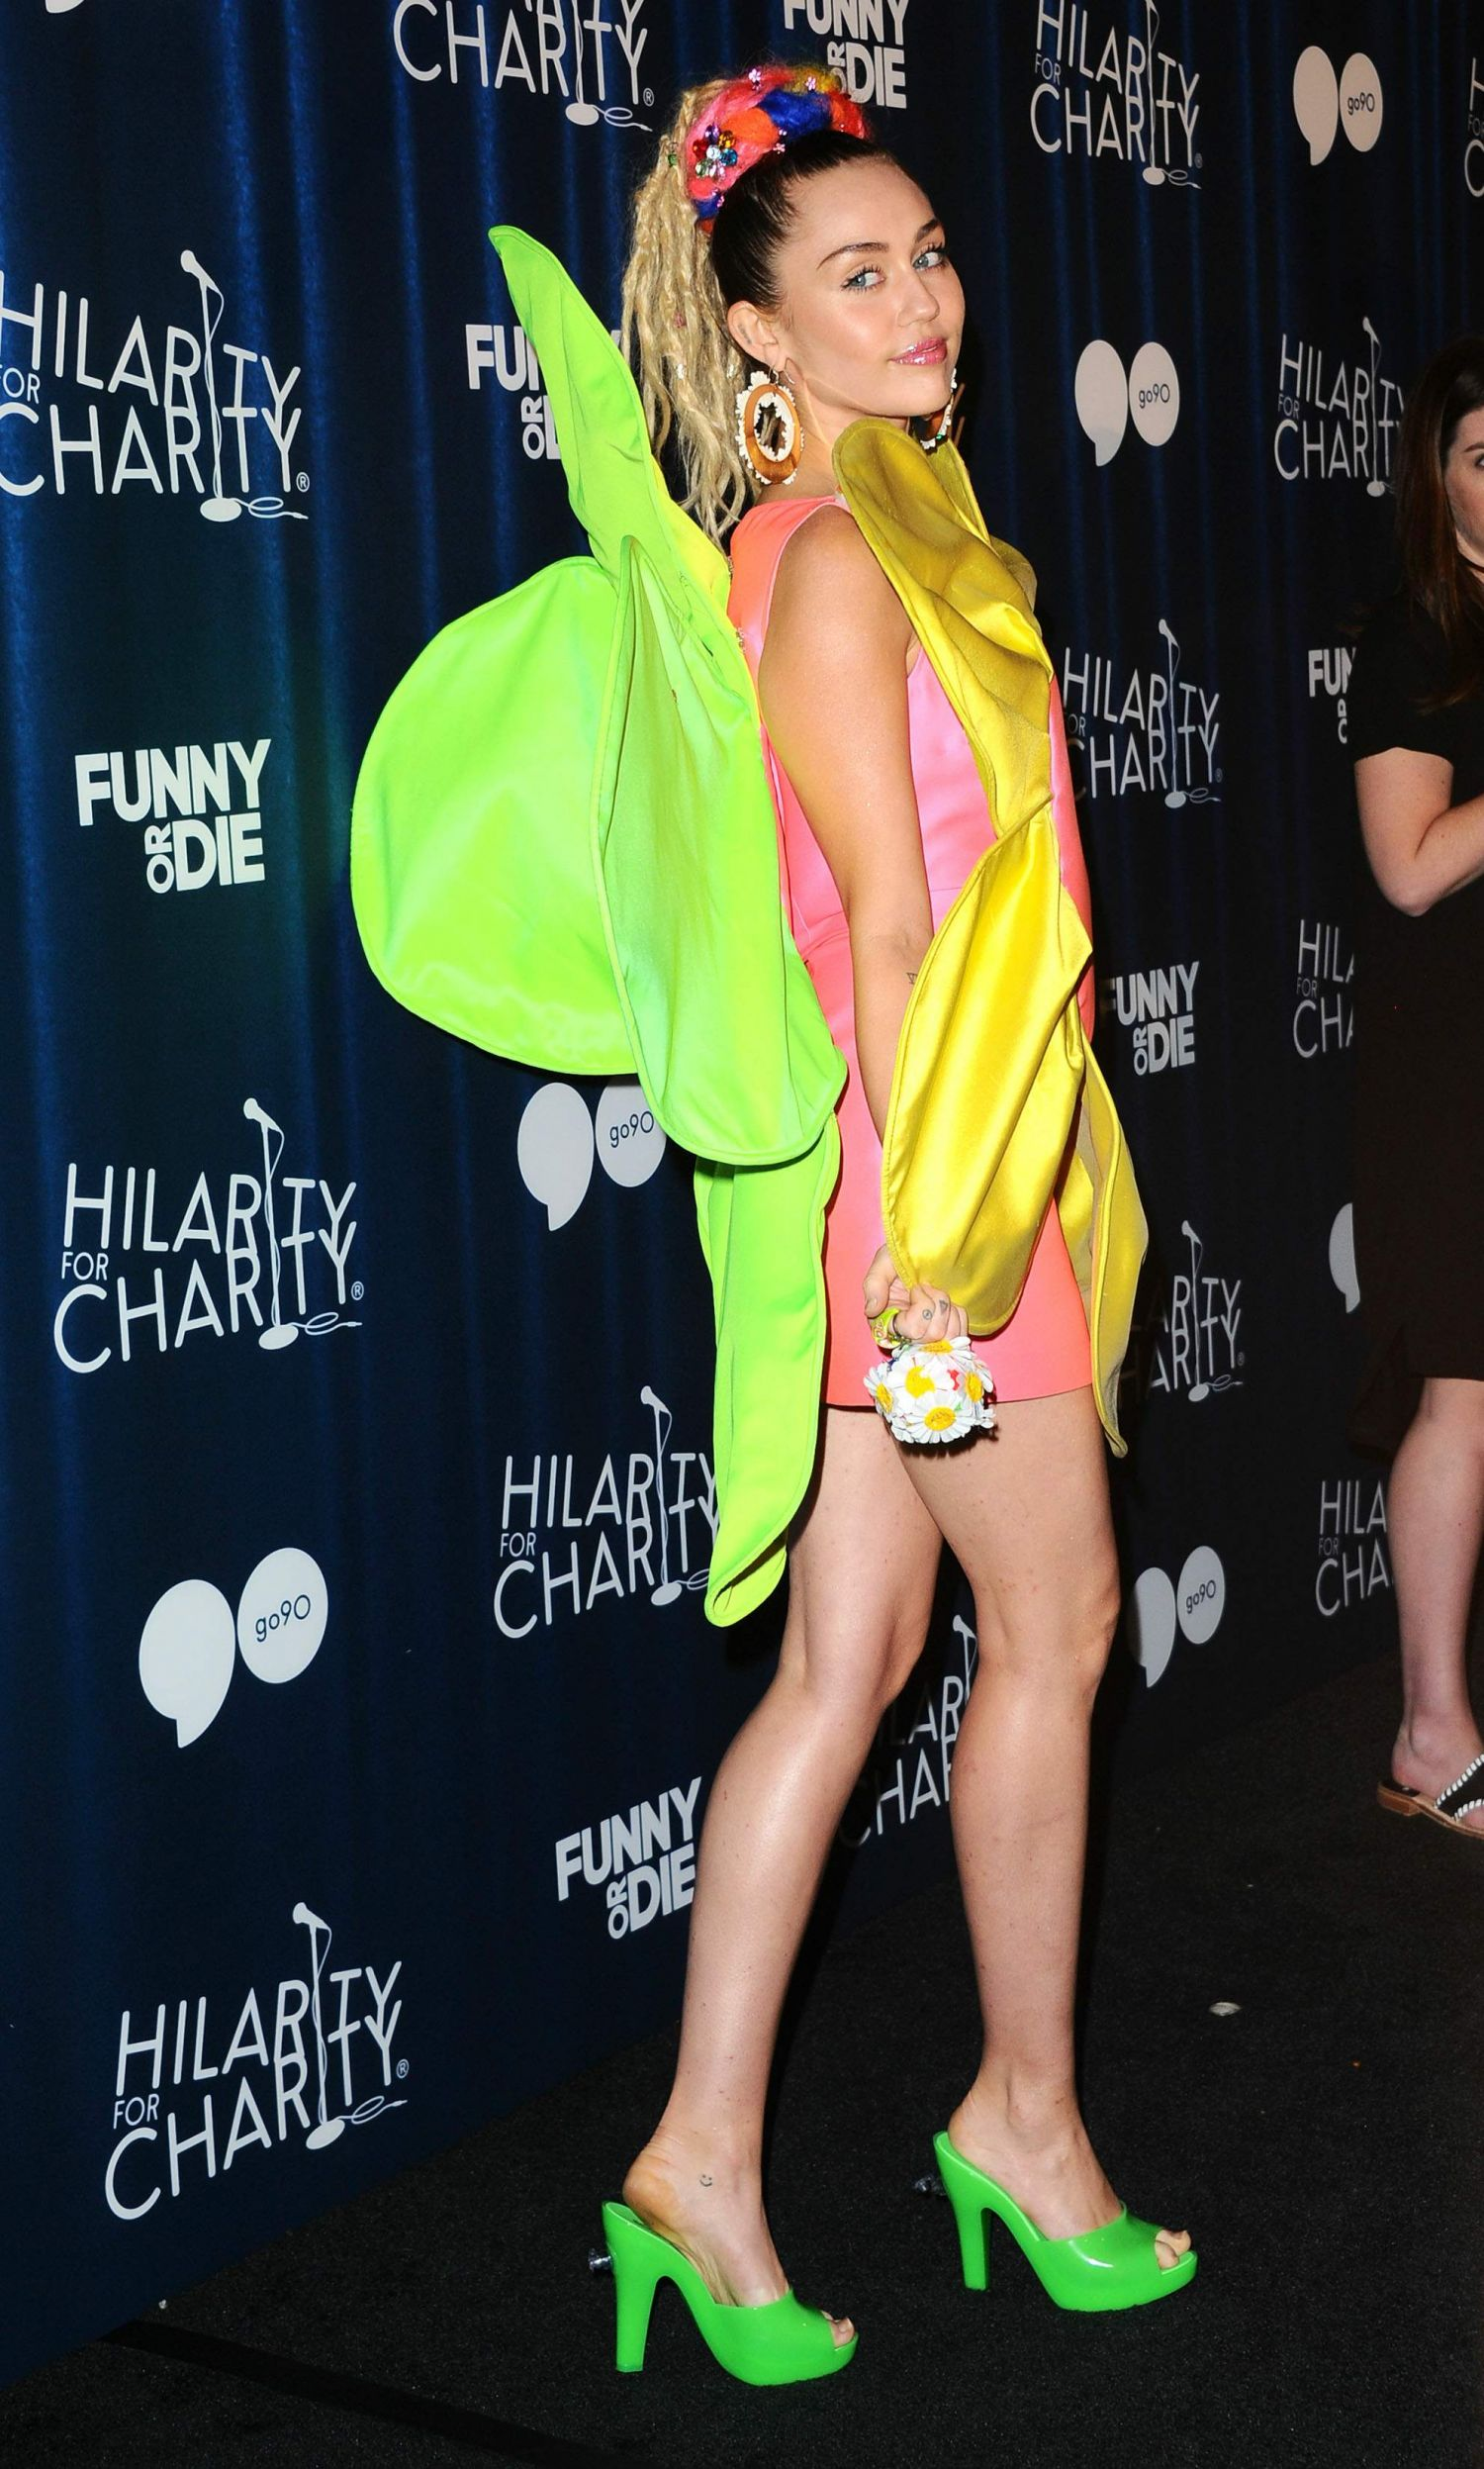 Miley-Cyrus-Hilarity-for-Charity`s-James-Franco's-Bar-Mitzvah-Hollywood-CA-8